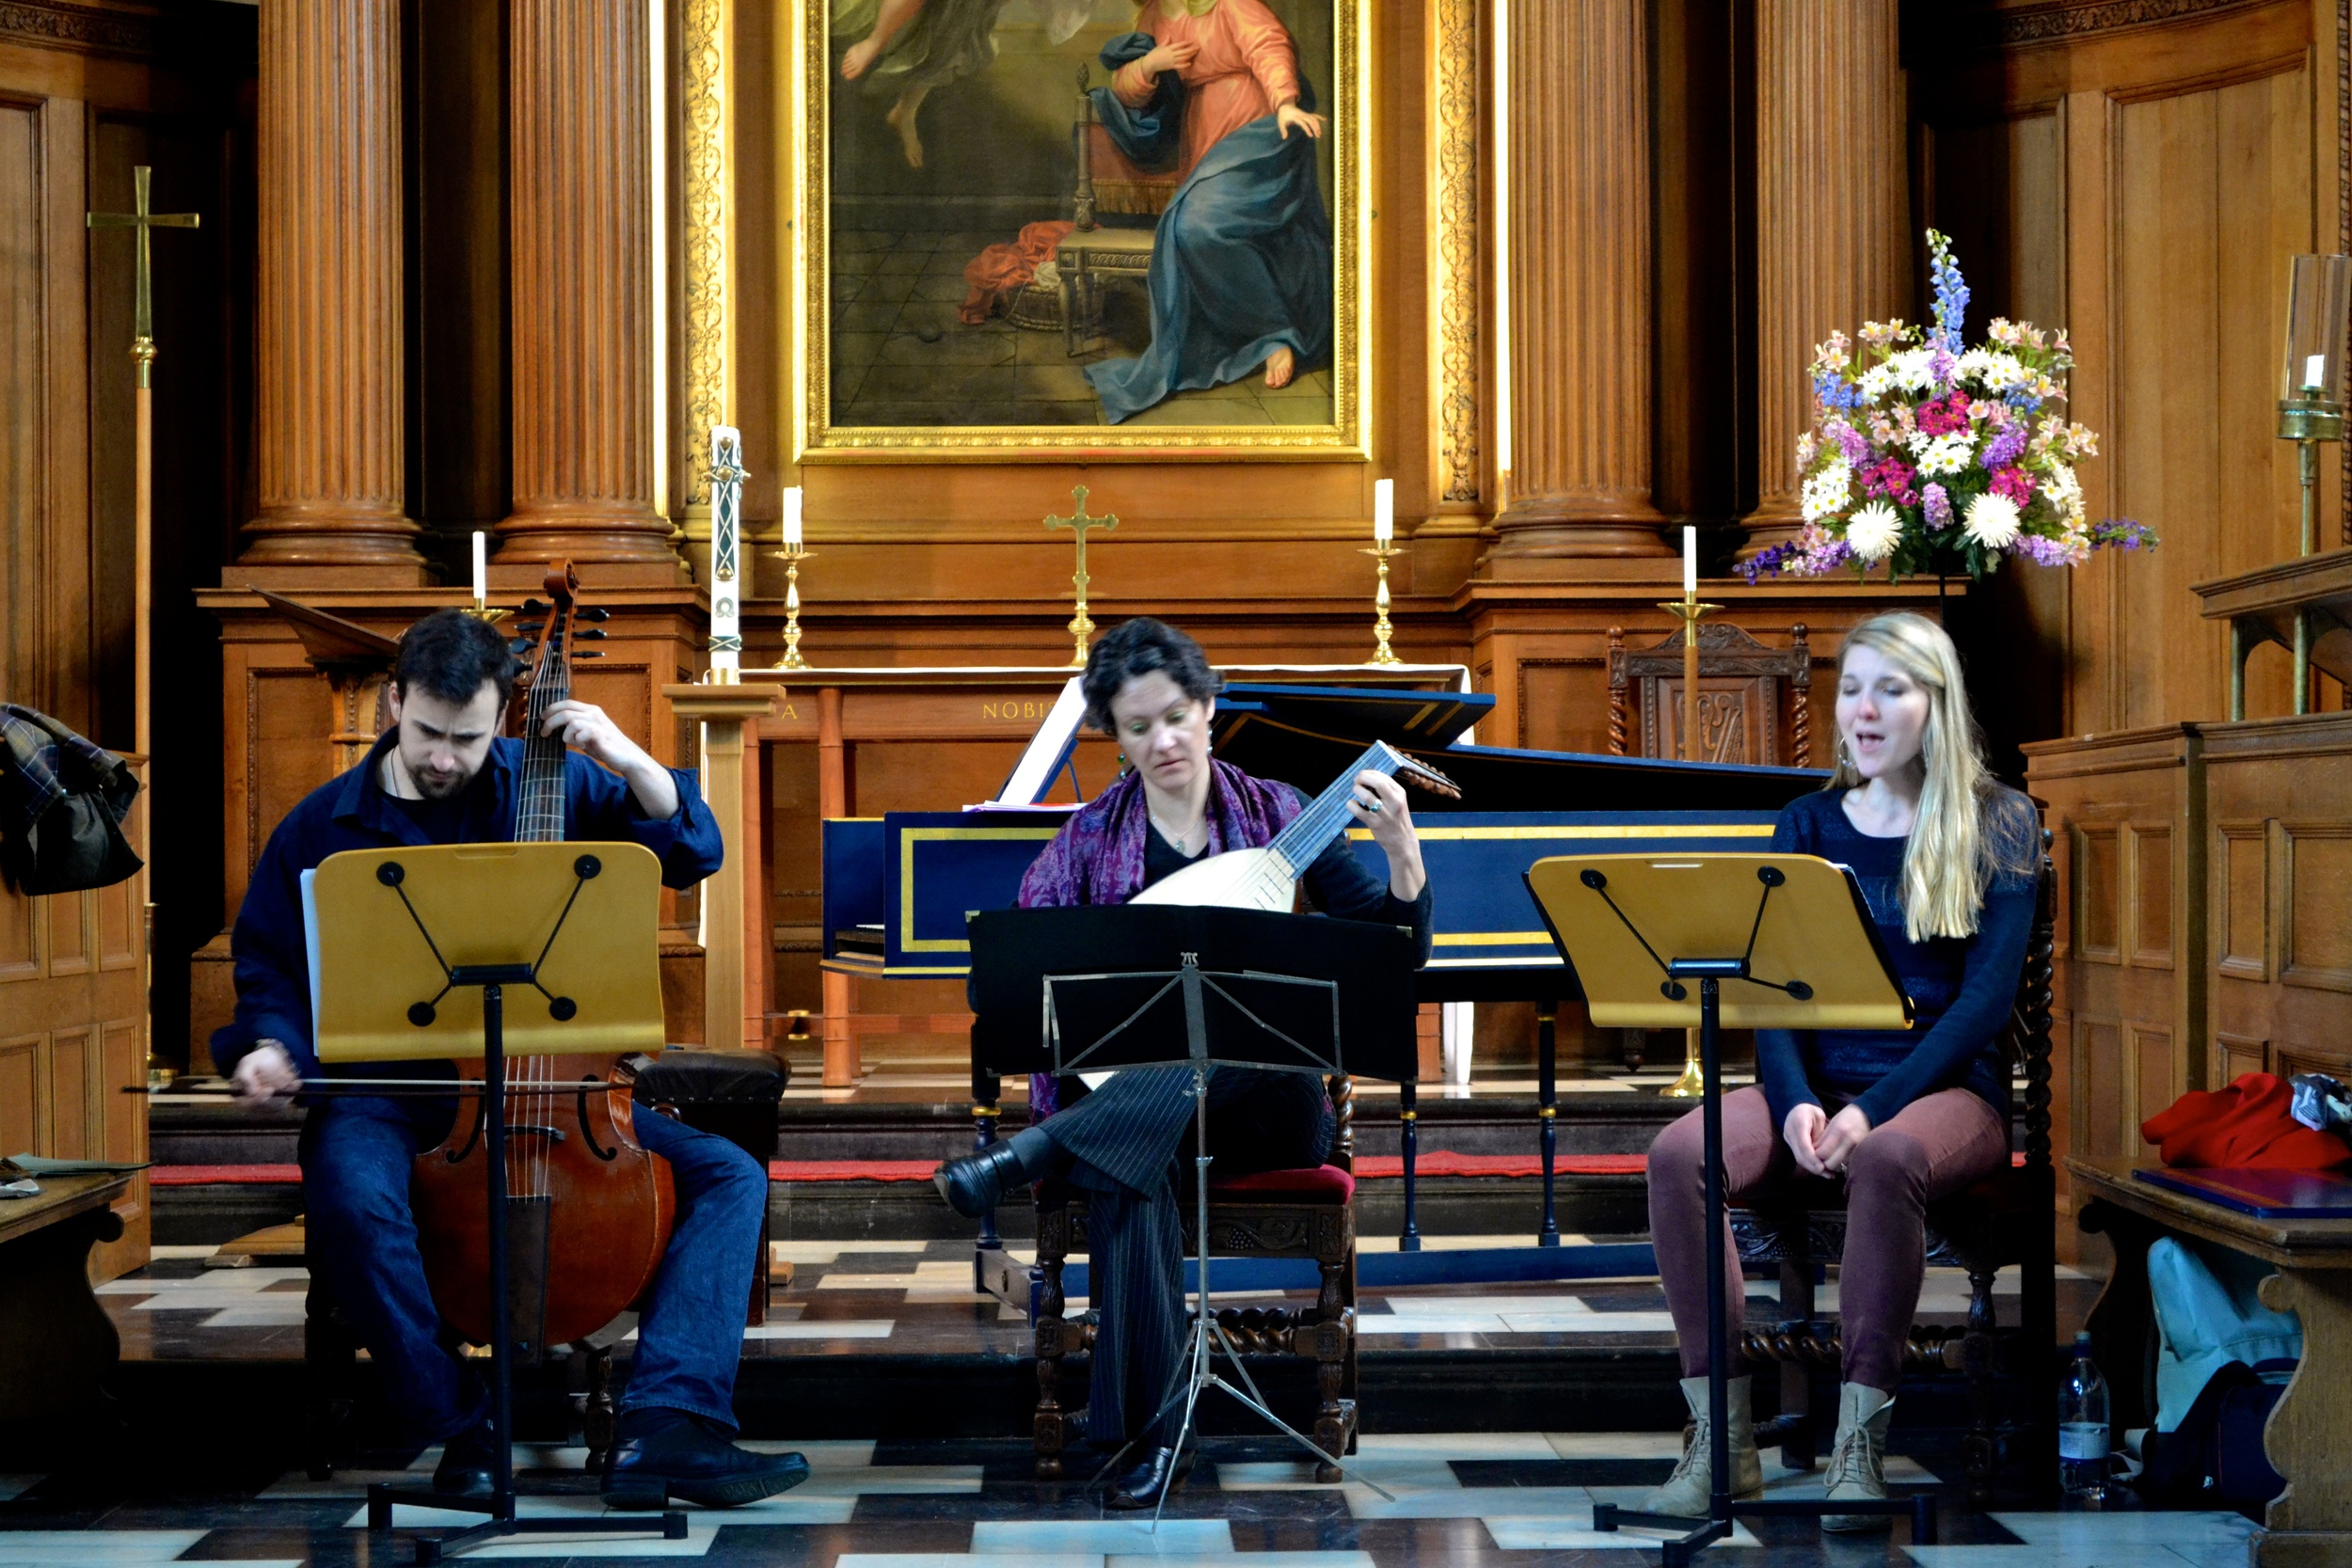 Members of L'Académie du Roi Soleil in the Chapel of Clare College, Cambridge. Sam Stadlen, gamba, and Elena Cicinskaite, lute.